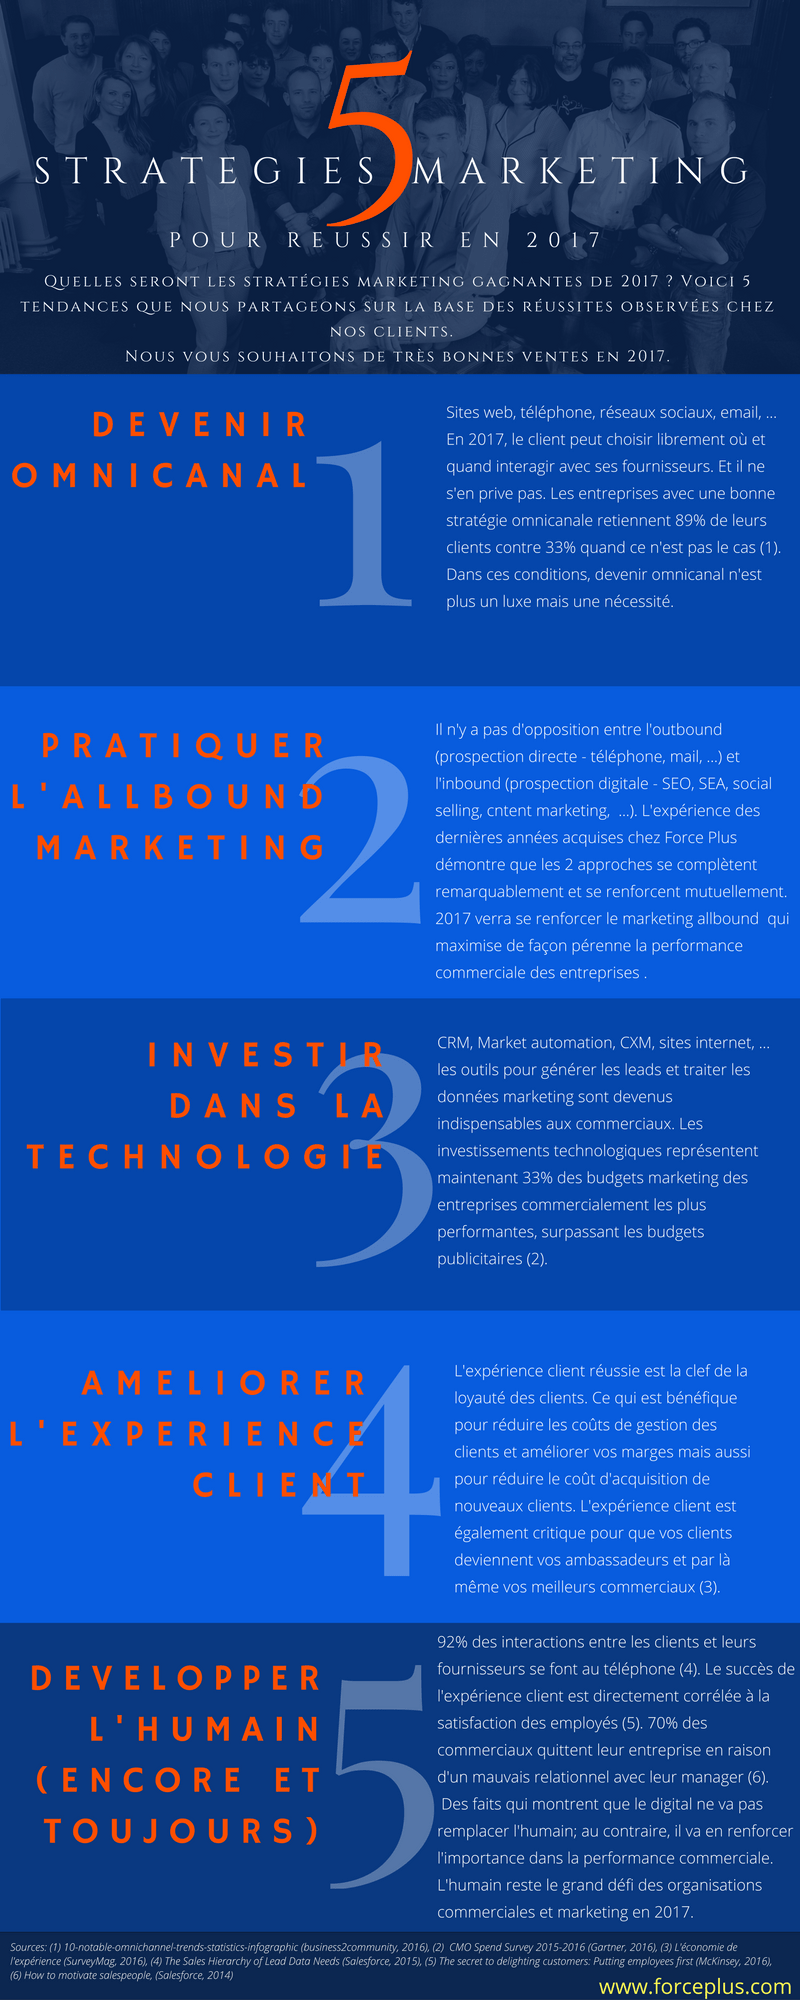 5-strategies-marketing-pour-reussir-en-2017-infographie